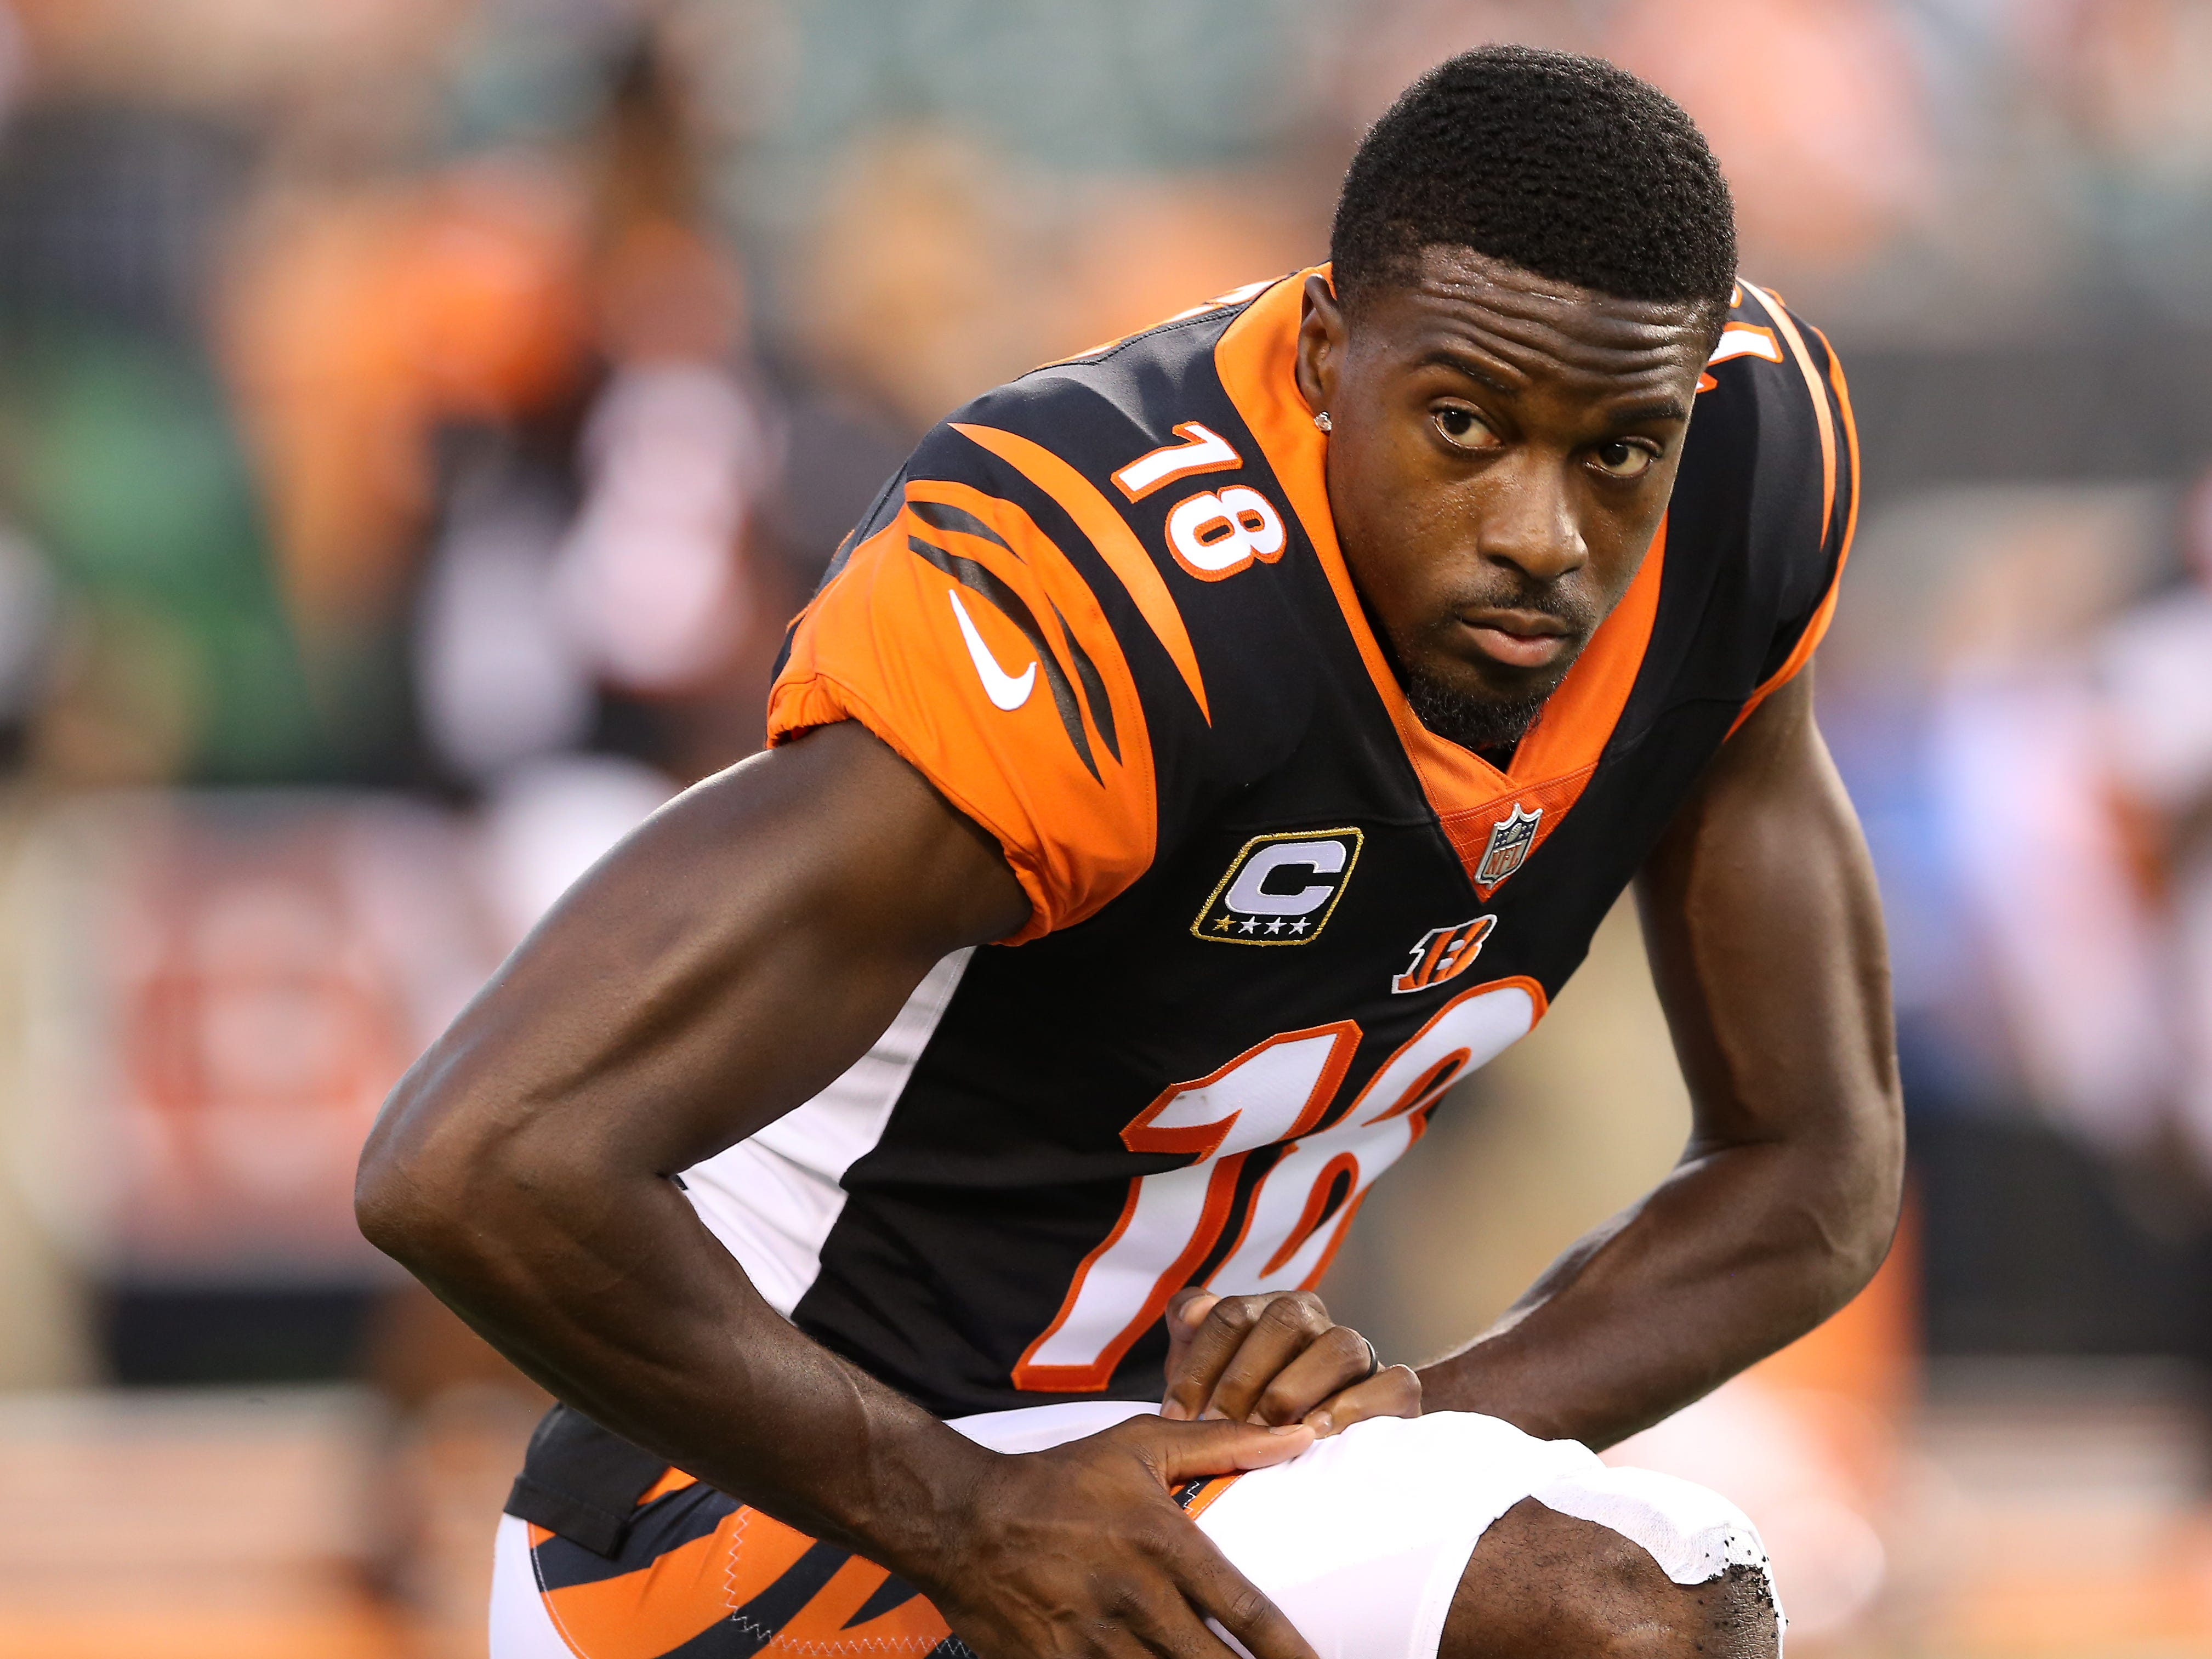 Cincinnati Bengals wide receiver A.J. Green (18) stretches during warm ups before the Week 2 NFL football game between the Baltimore Ravens and the Cincinnati Bengals, Thursday, Sept. 13, 2018, Paul Brown Stadium in Cincinnati.